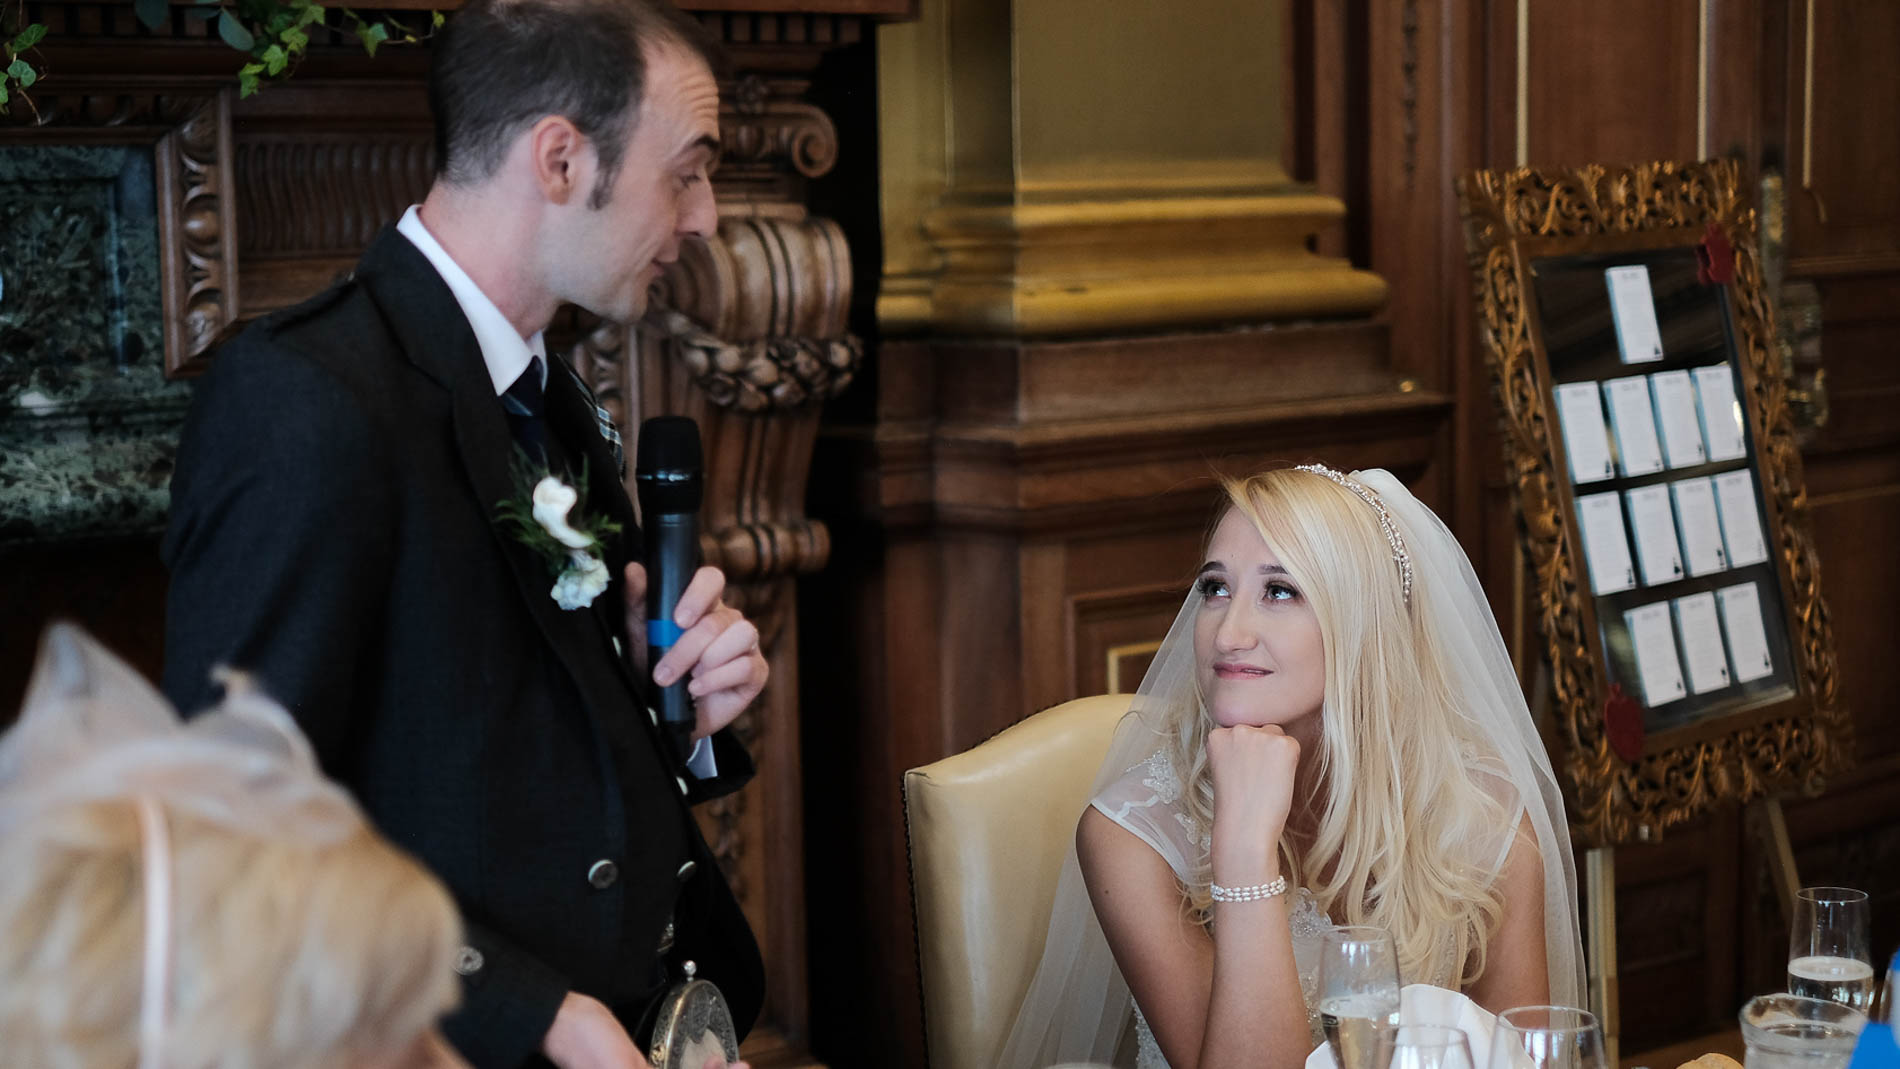 A colour photograph of the bride and groom sharing a tender moment as the groom gives his speech during their wedding reception in Edinburgh City Chambers